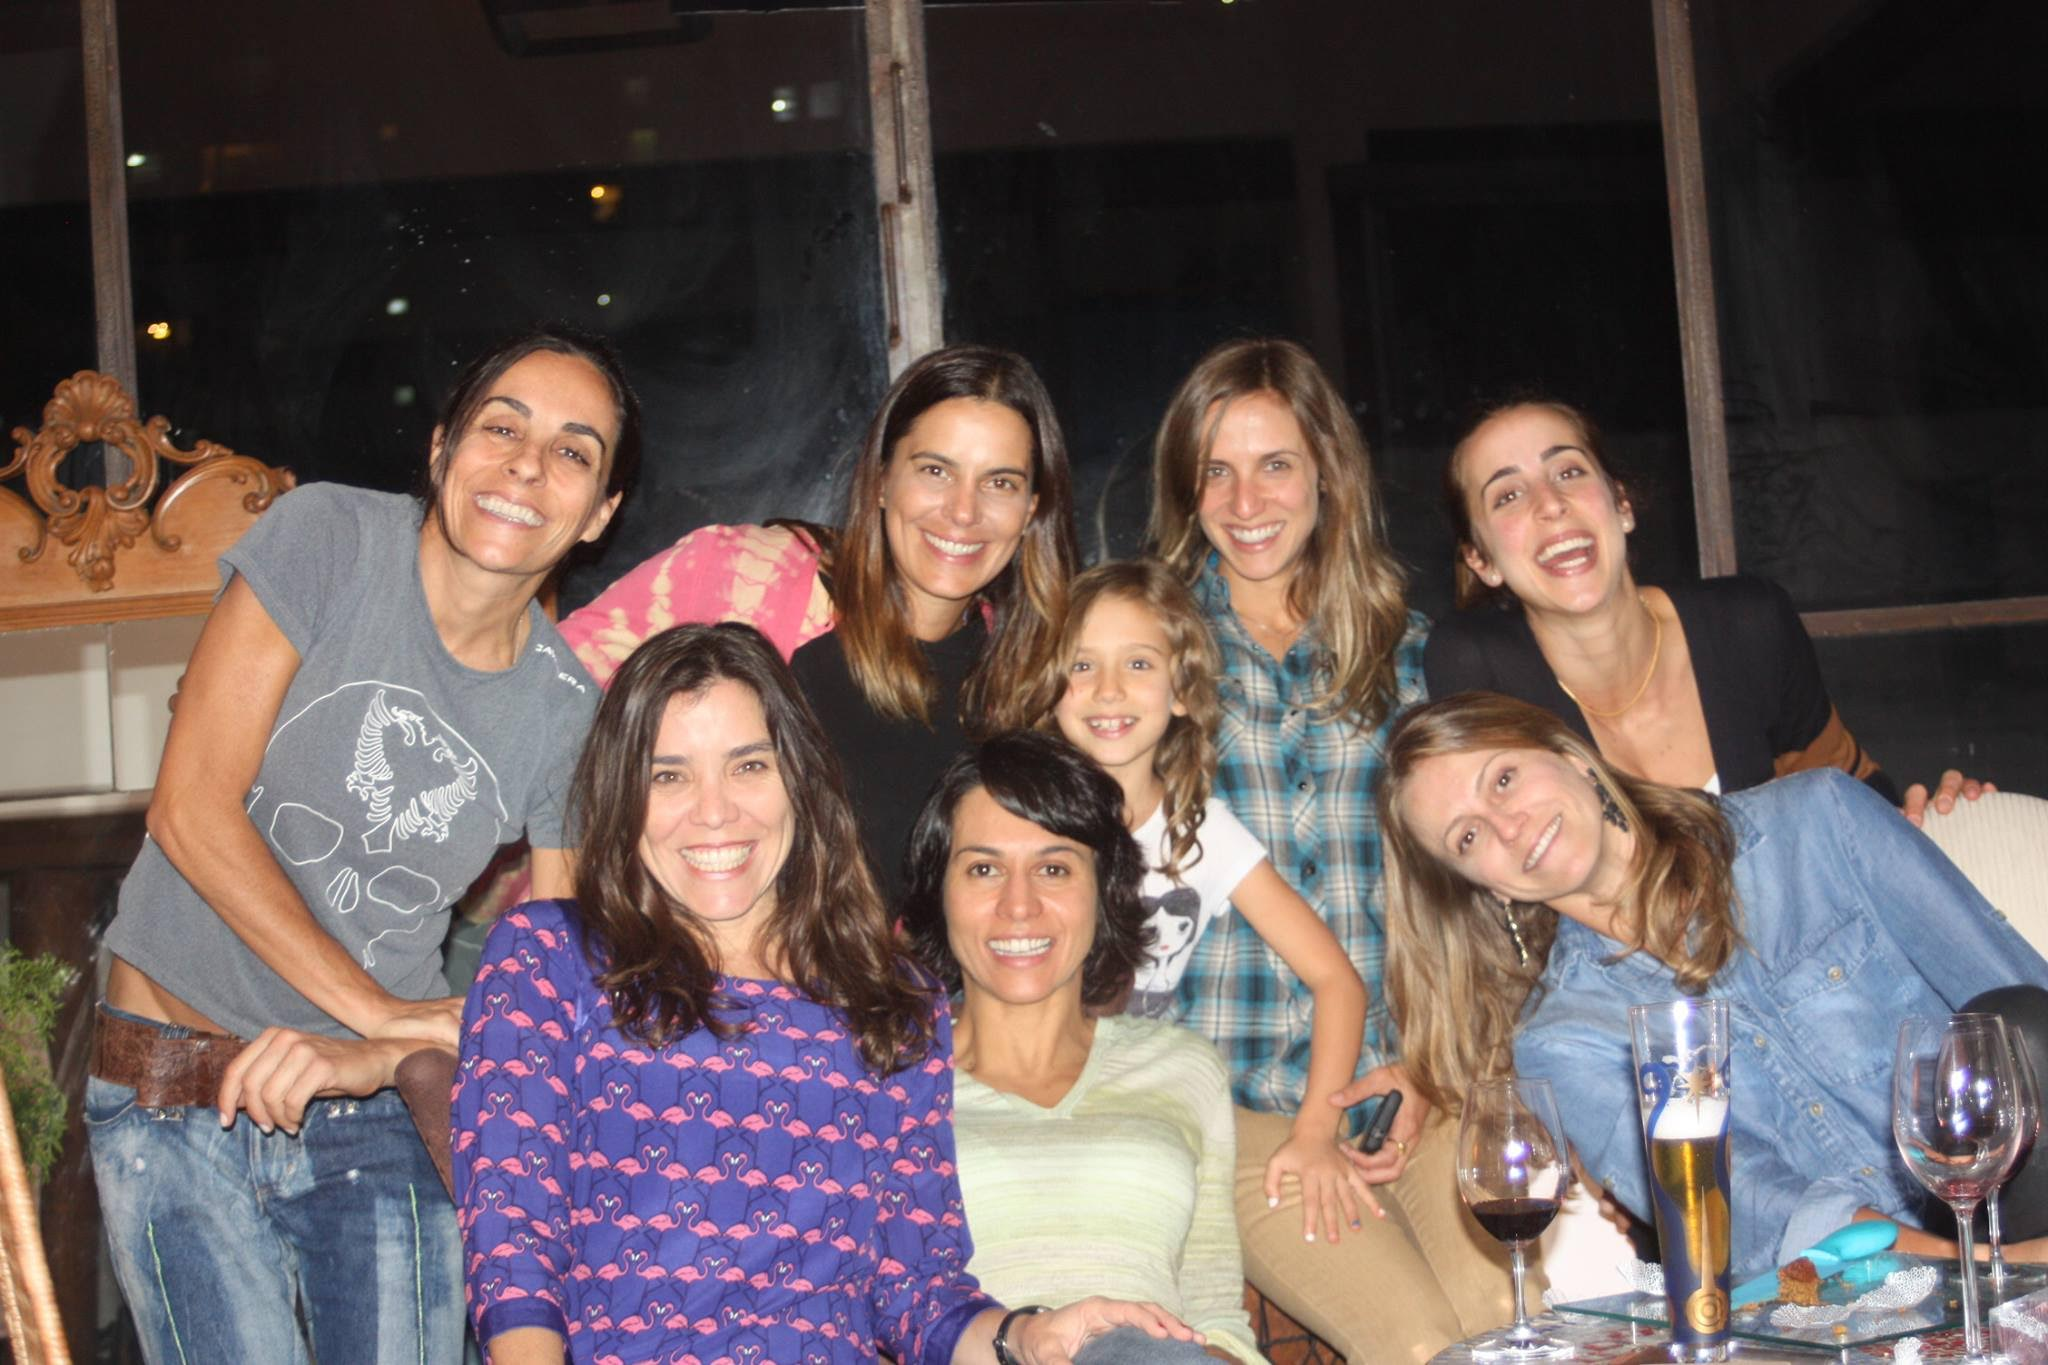 Friends gathering in November 2012. From the left to the right, standing: Cris, Shubi, Bebel, Marie and Mati. Sitting: Cau, Belô and Vivi